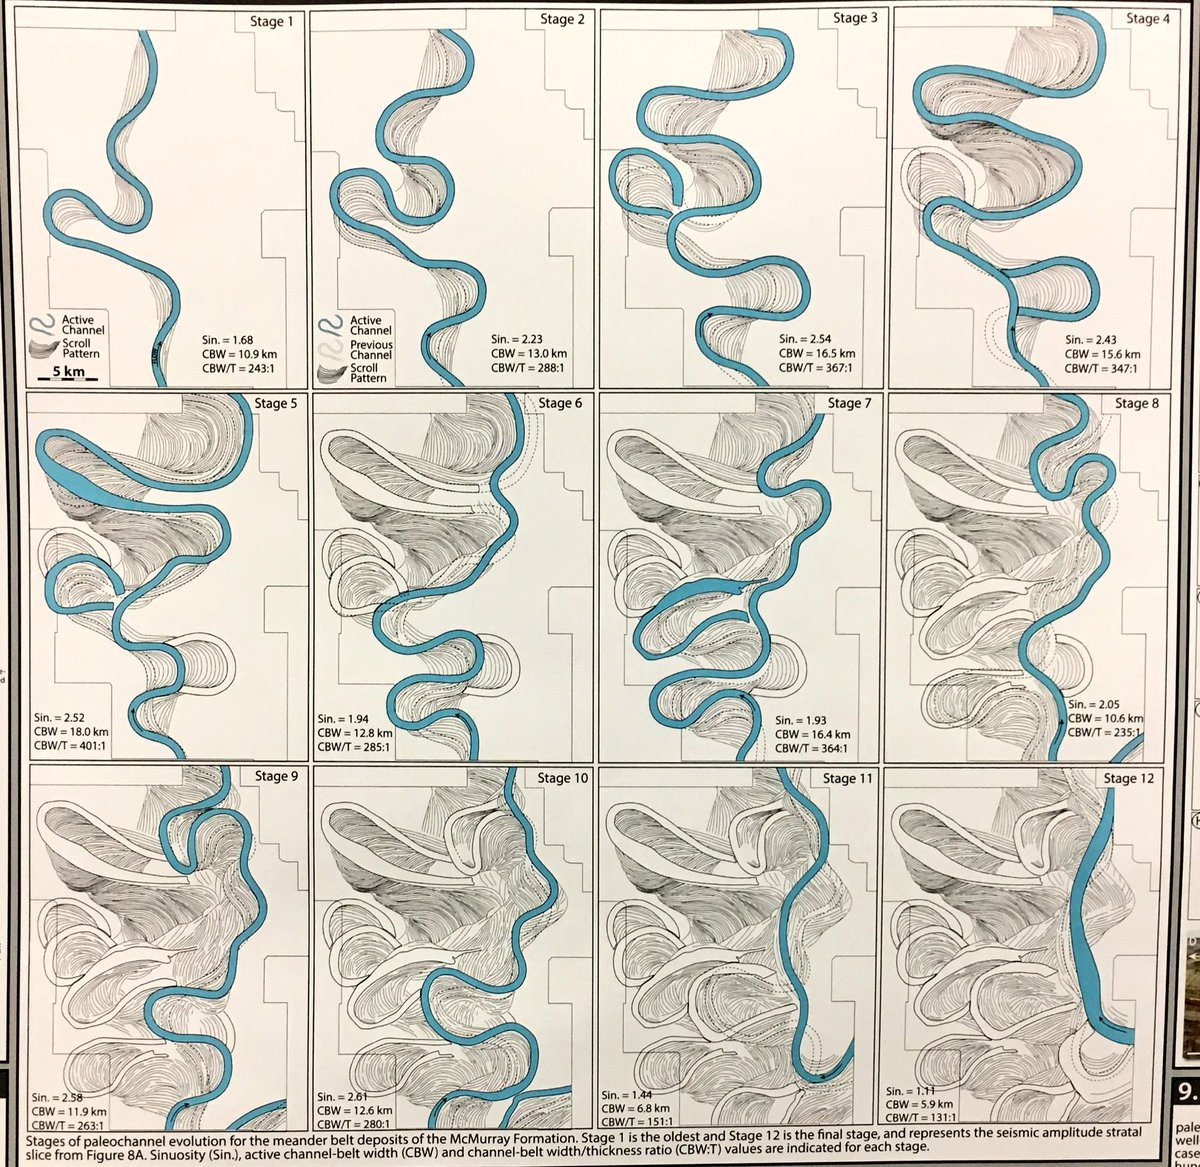 reconstruction of Cretaceous river evolution with 3-D seismic data (Paul Durkin's work) #AGU16 https://t.co/aE6sSJEQL9